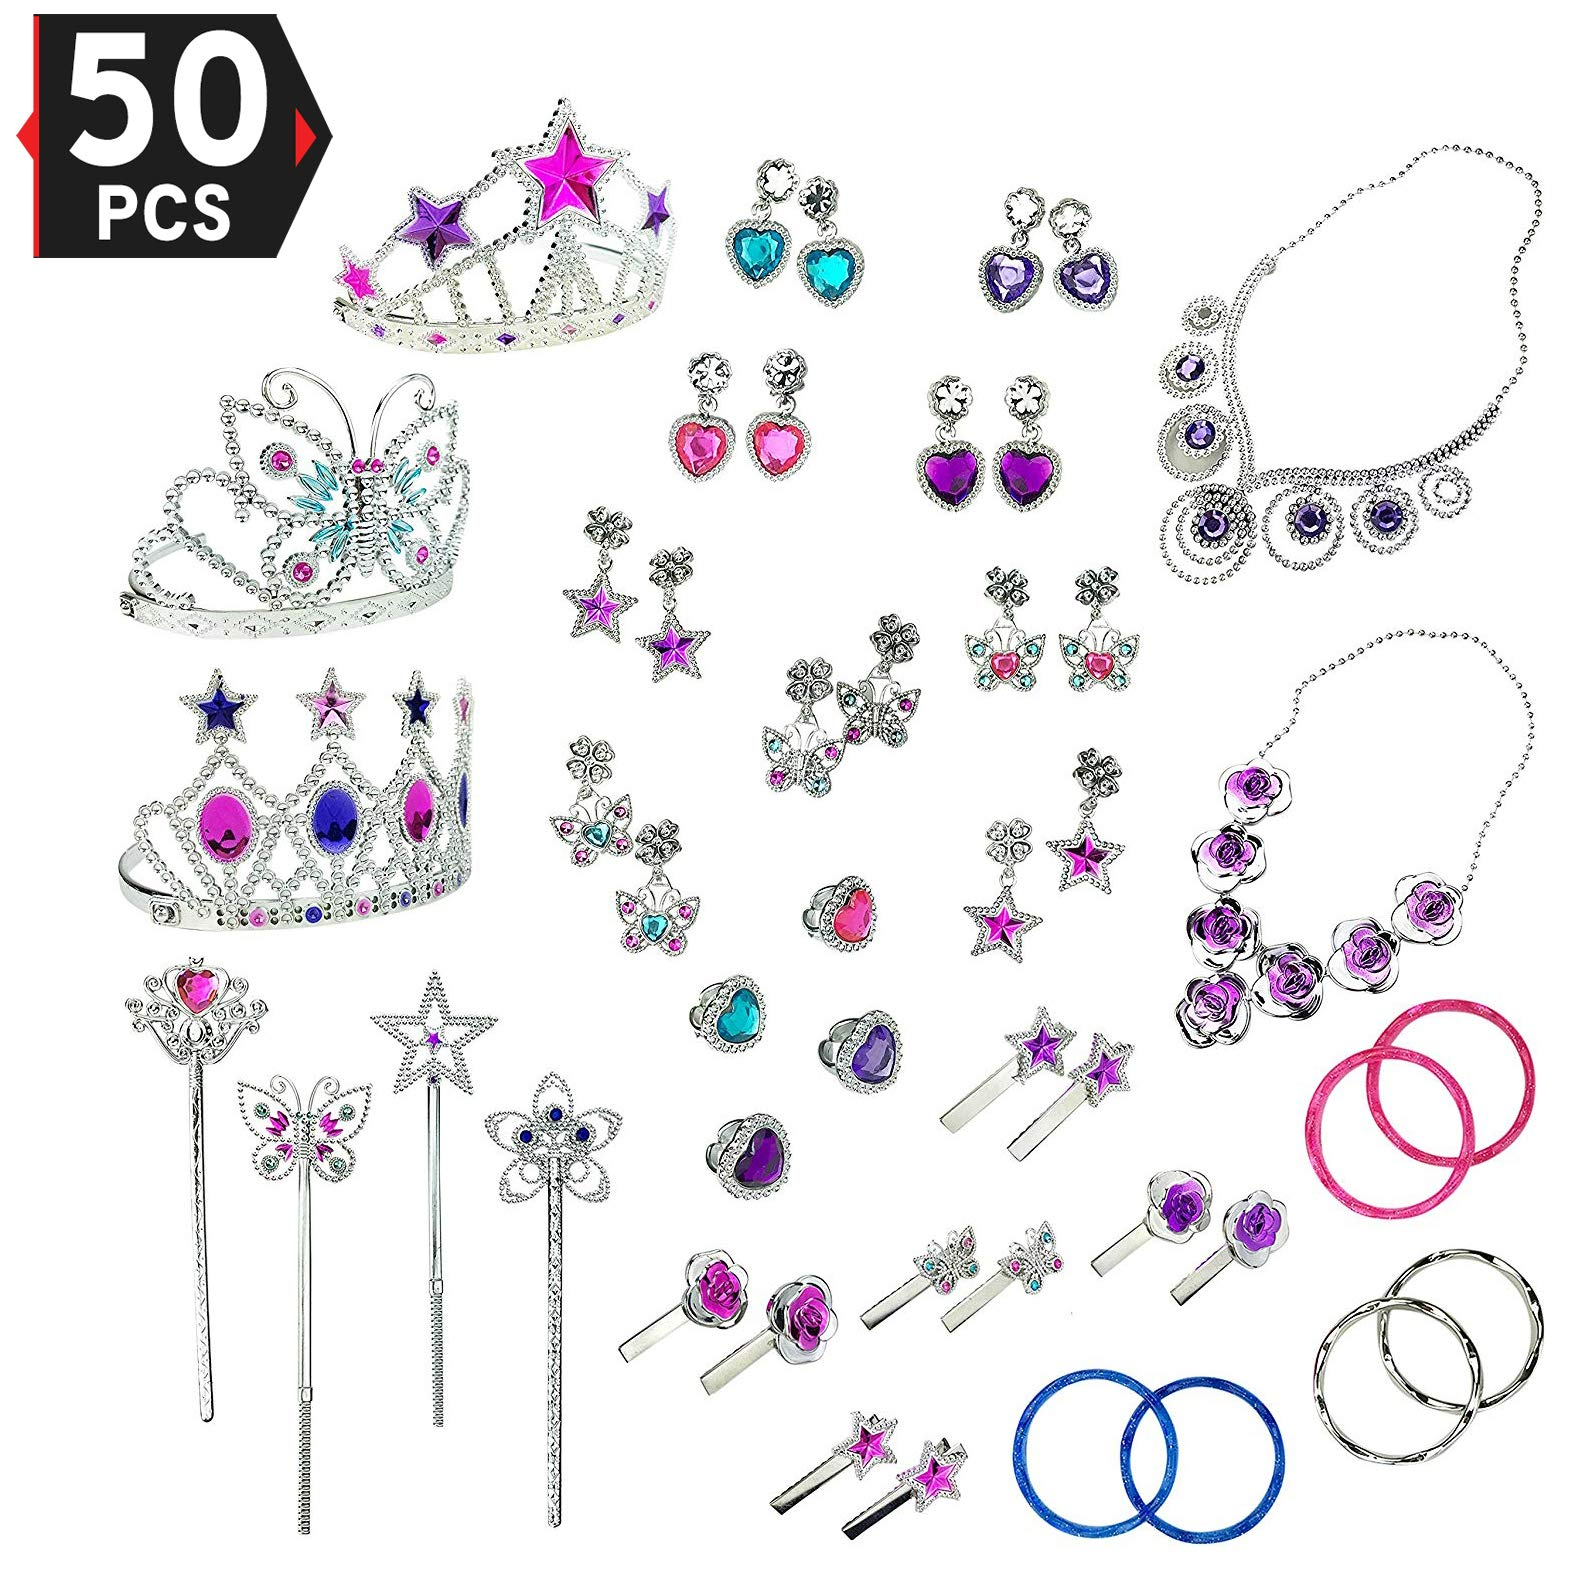 Liberty Imports Princess Jewelry Dress Up Accessories Toy Playset for Girls (50 pcs) by Liberty Imports